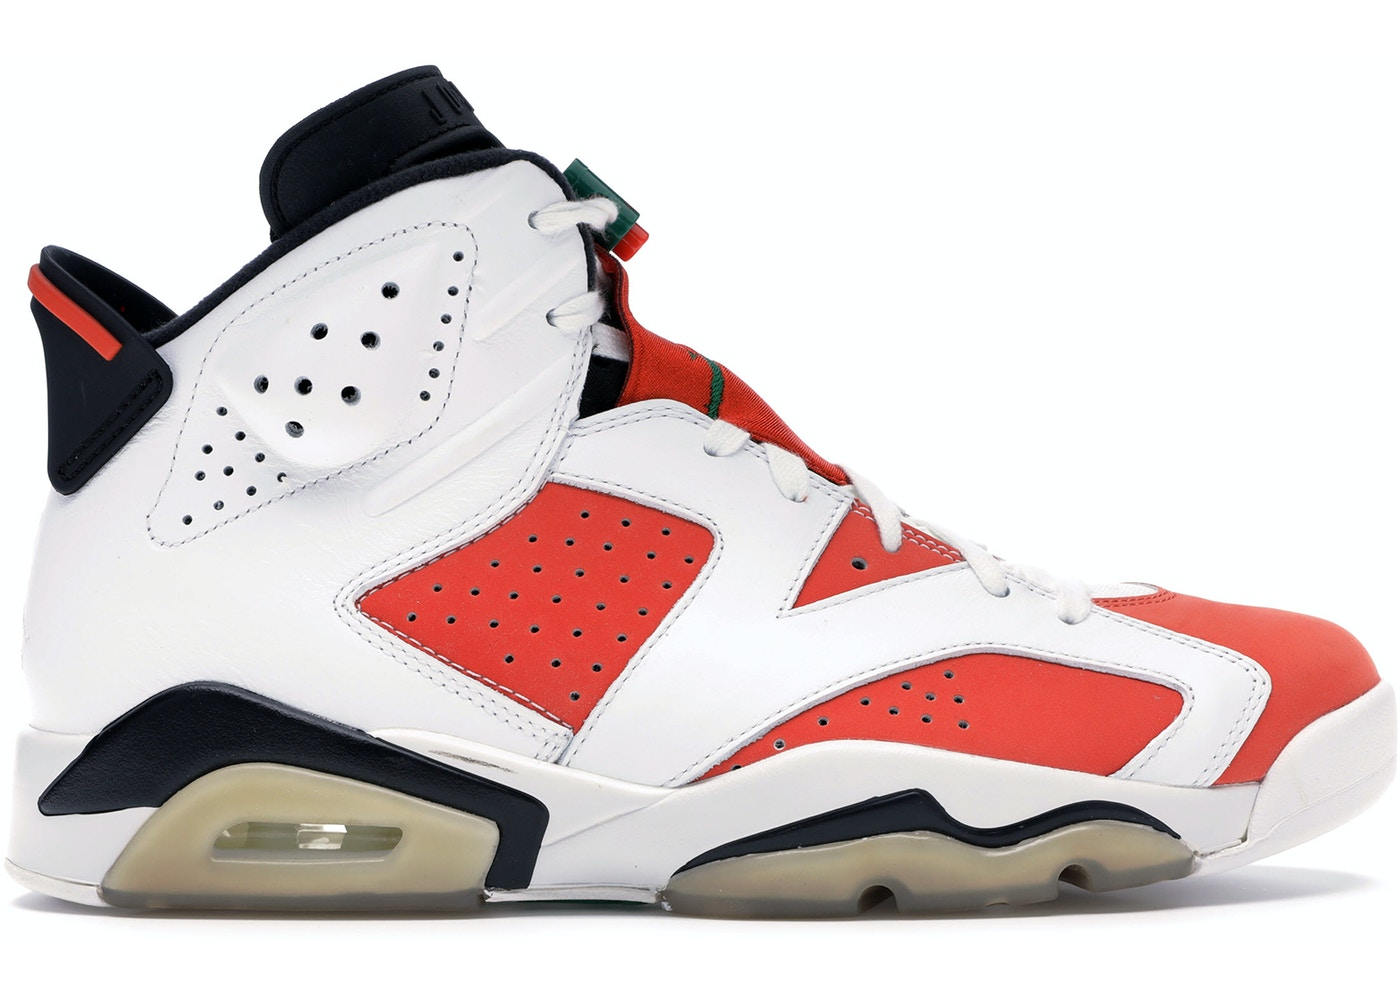 5fb508c001a23d Buy Air Jordan 6 Shoes   Deadstock Sneakers